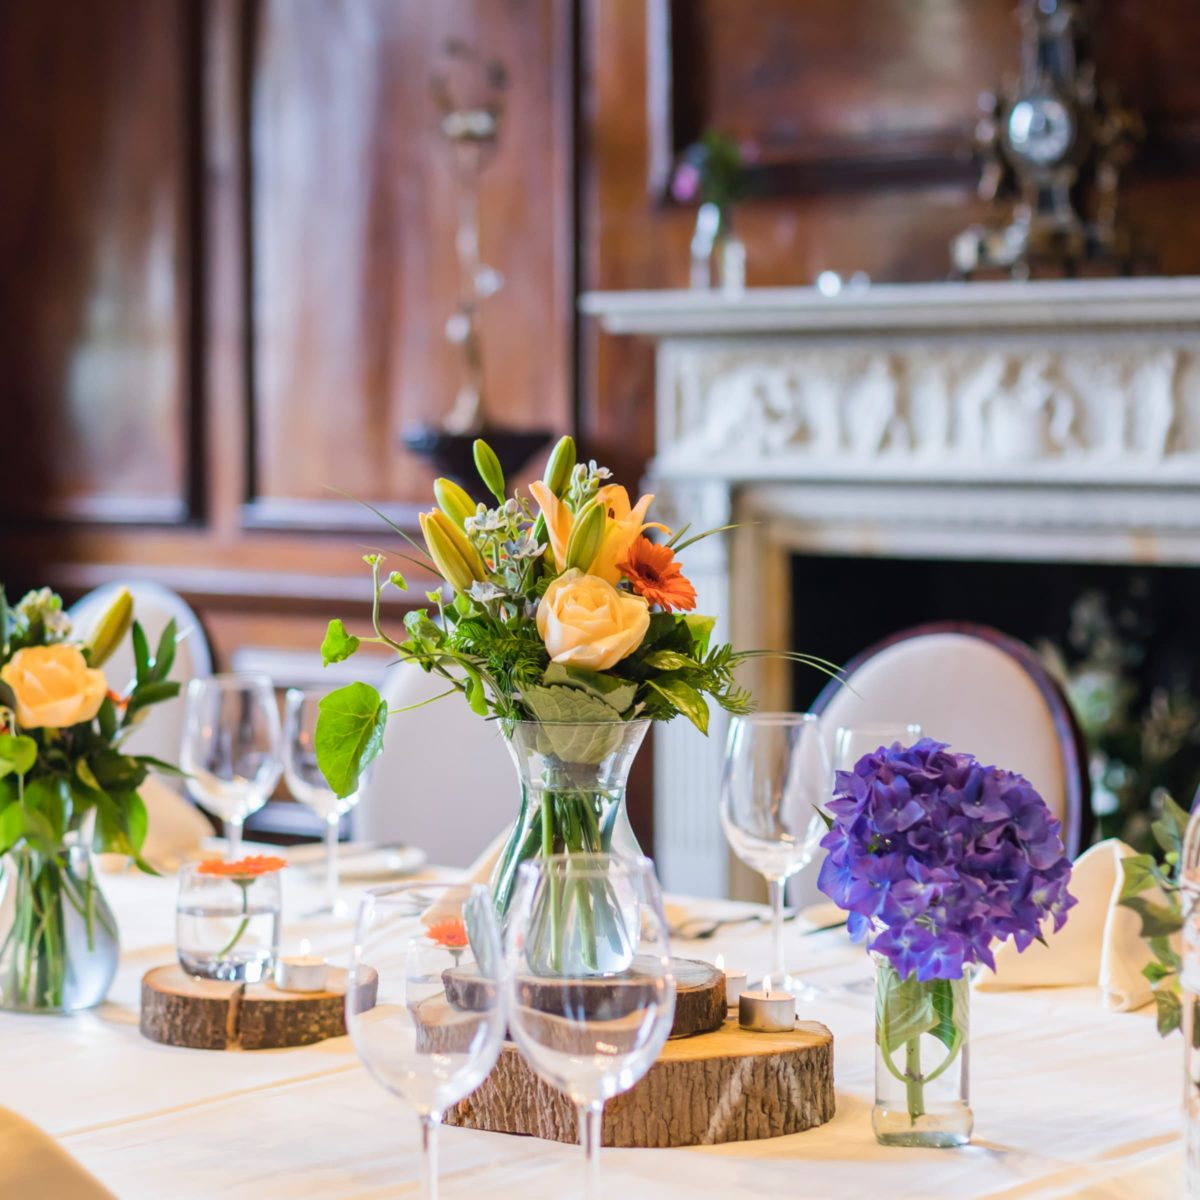 private dining package at coombe abbey